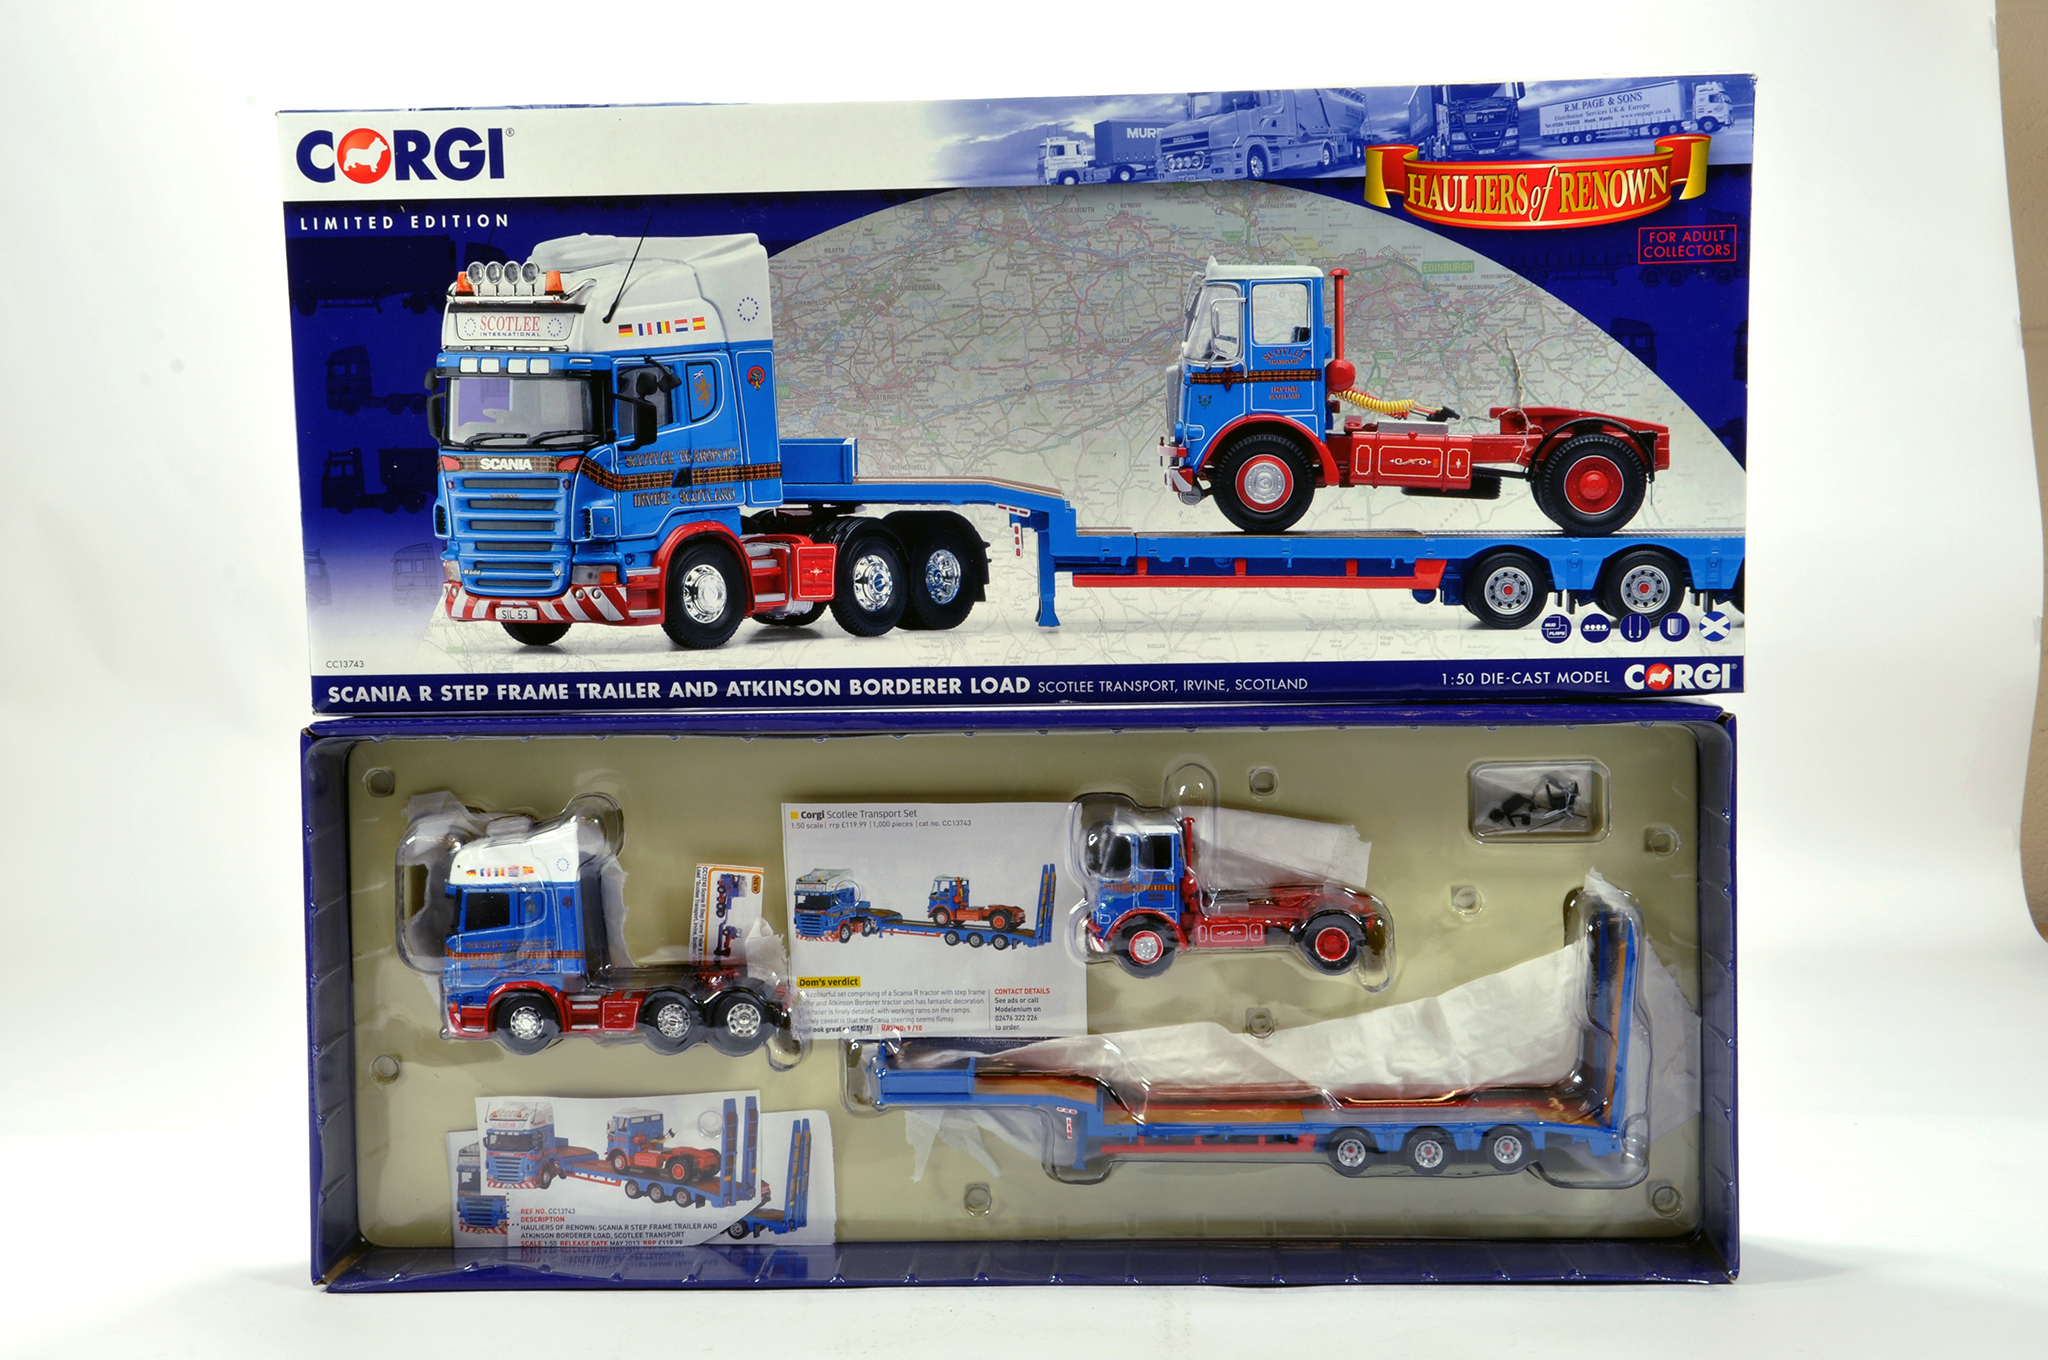 Lot 50 - Corgi 1/50 diecast truck issue comprising No. CC13743 Scania R Stepframe Trailer and Atkinson